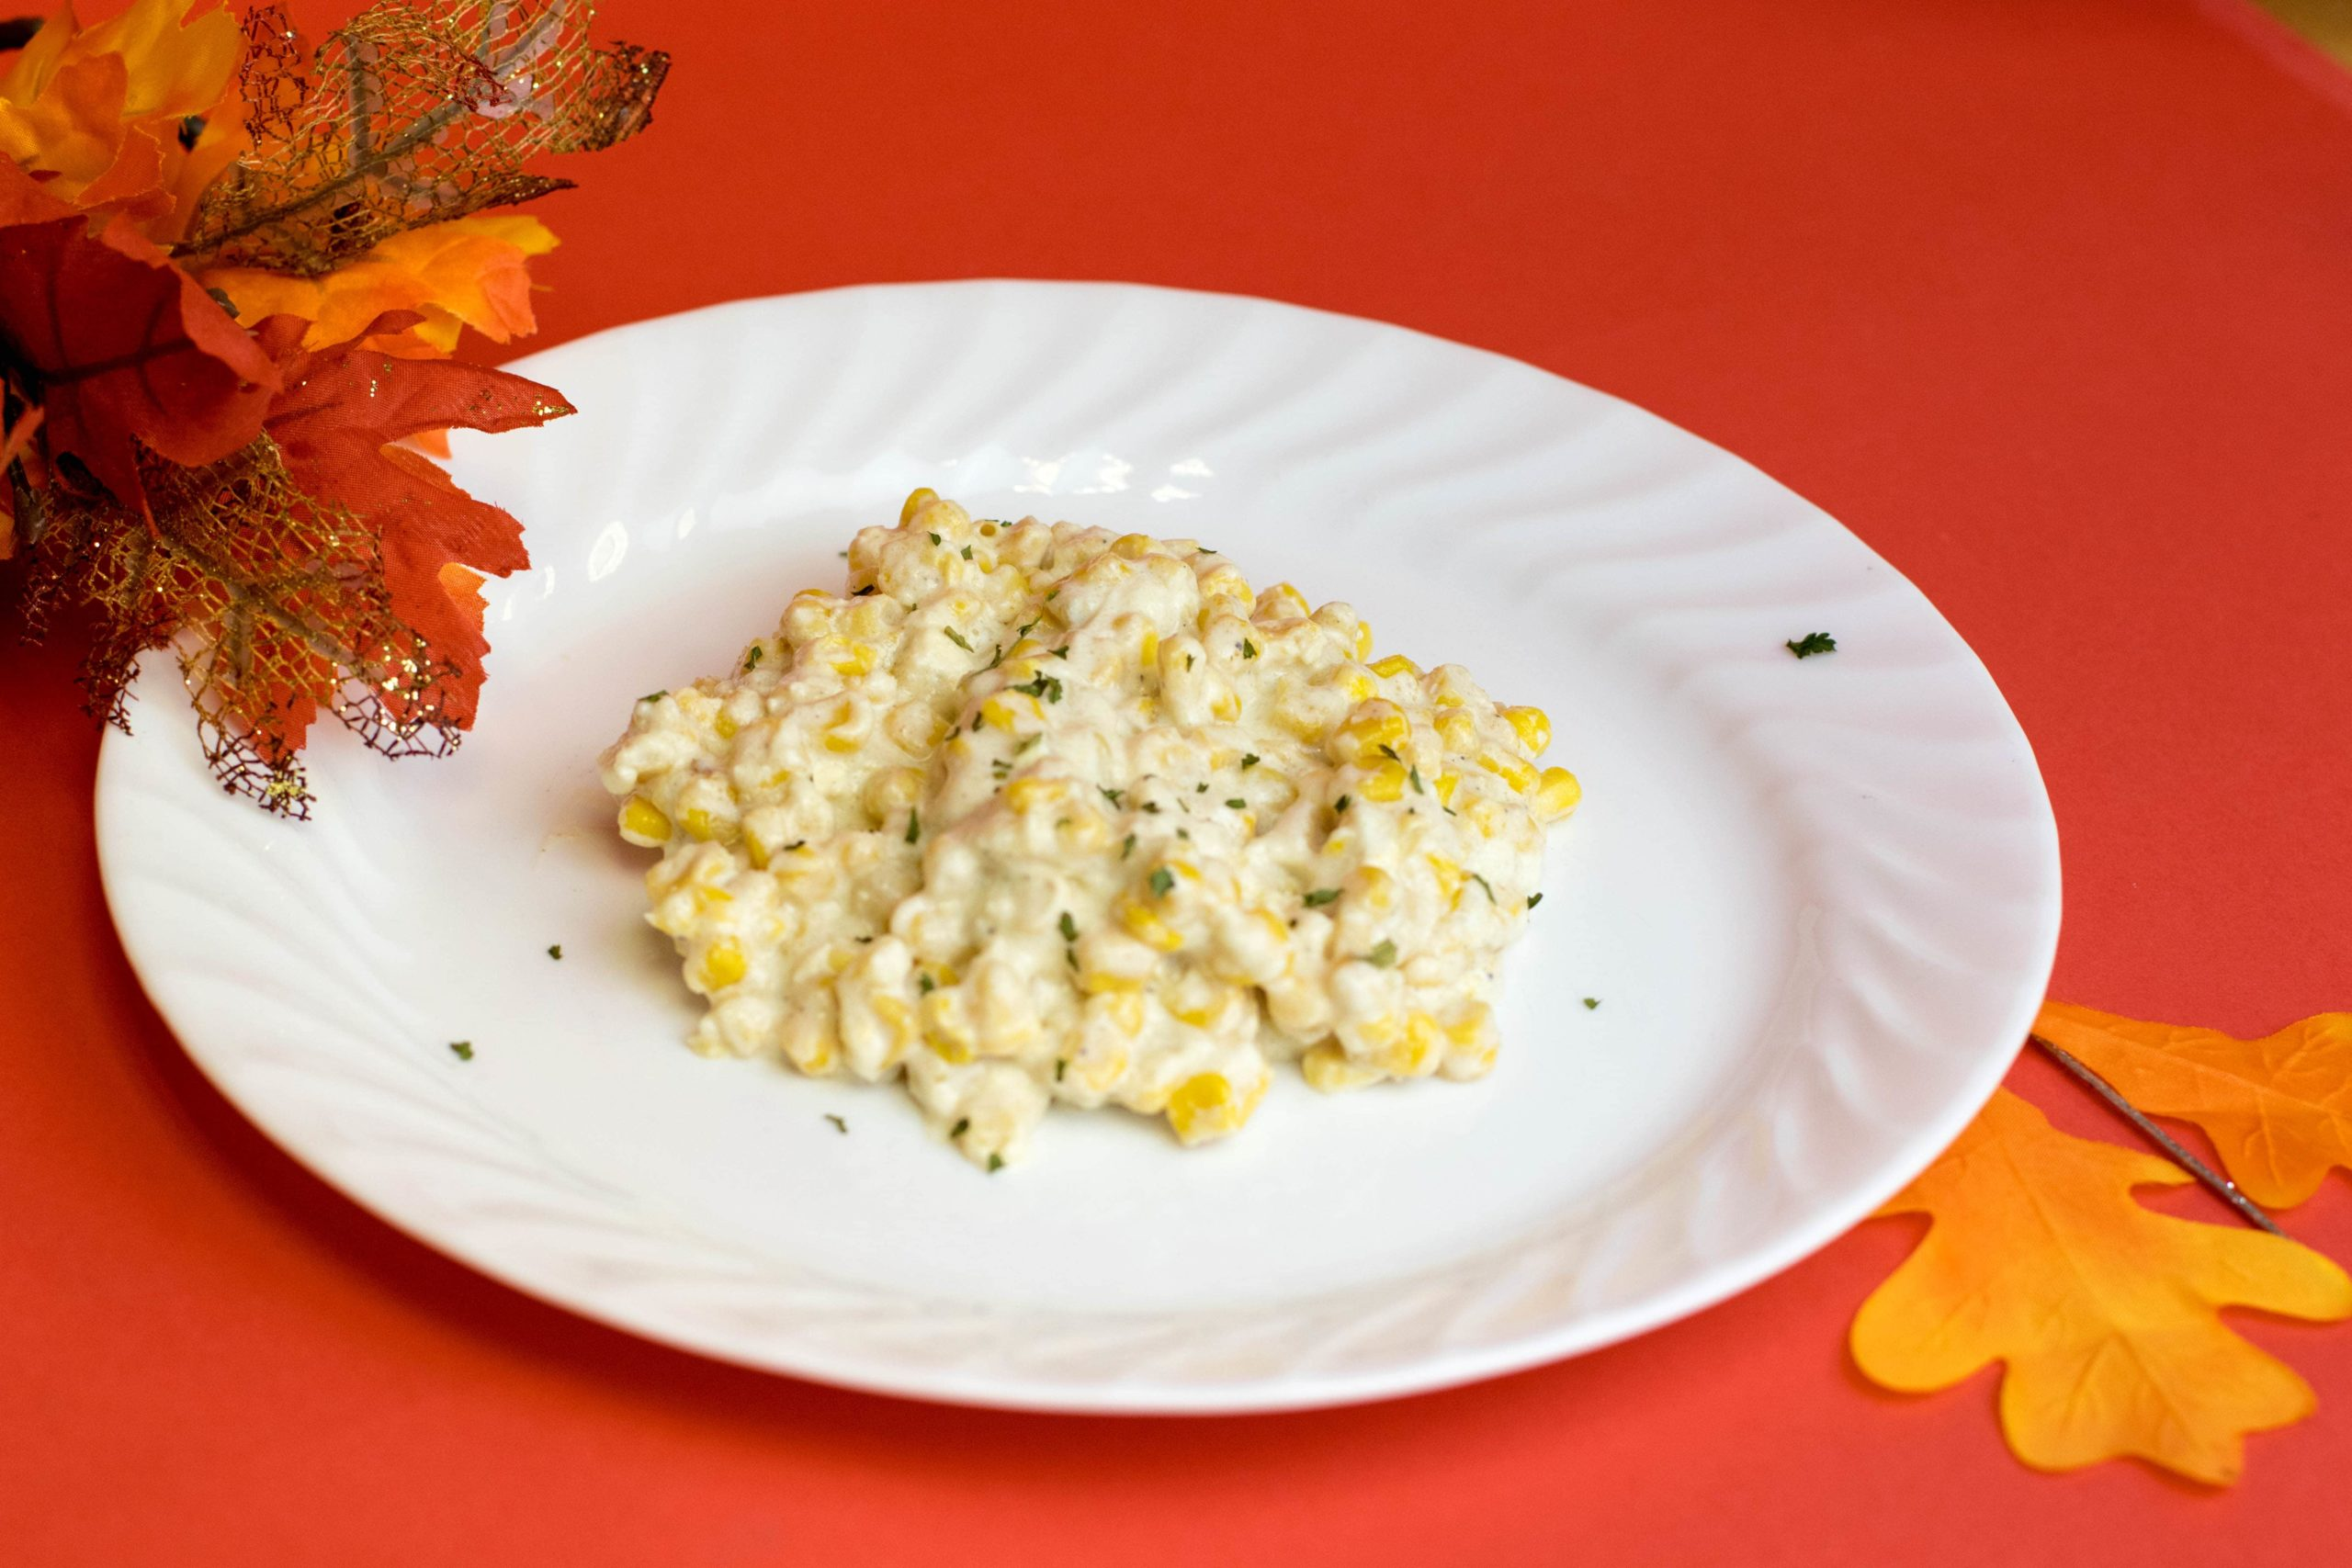 Creamed corn on a white plate laying on a flat red background surrounded by fall leaves.